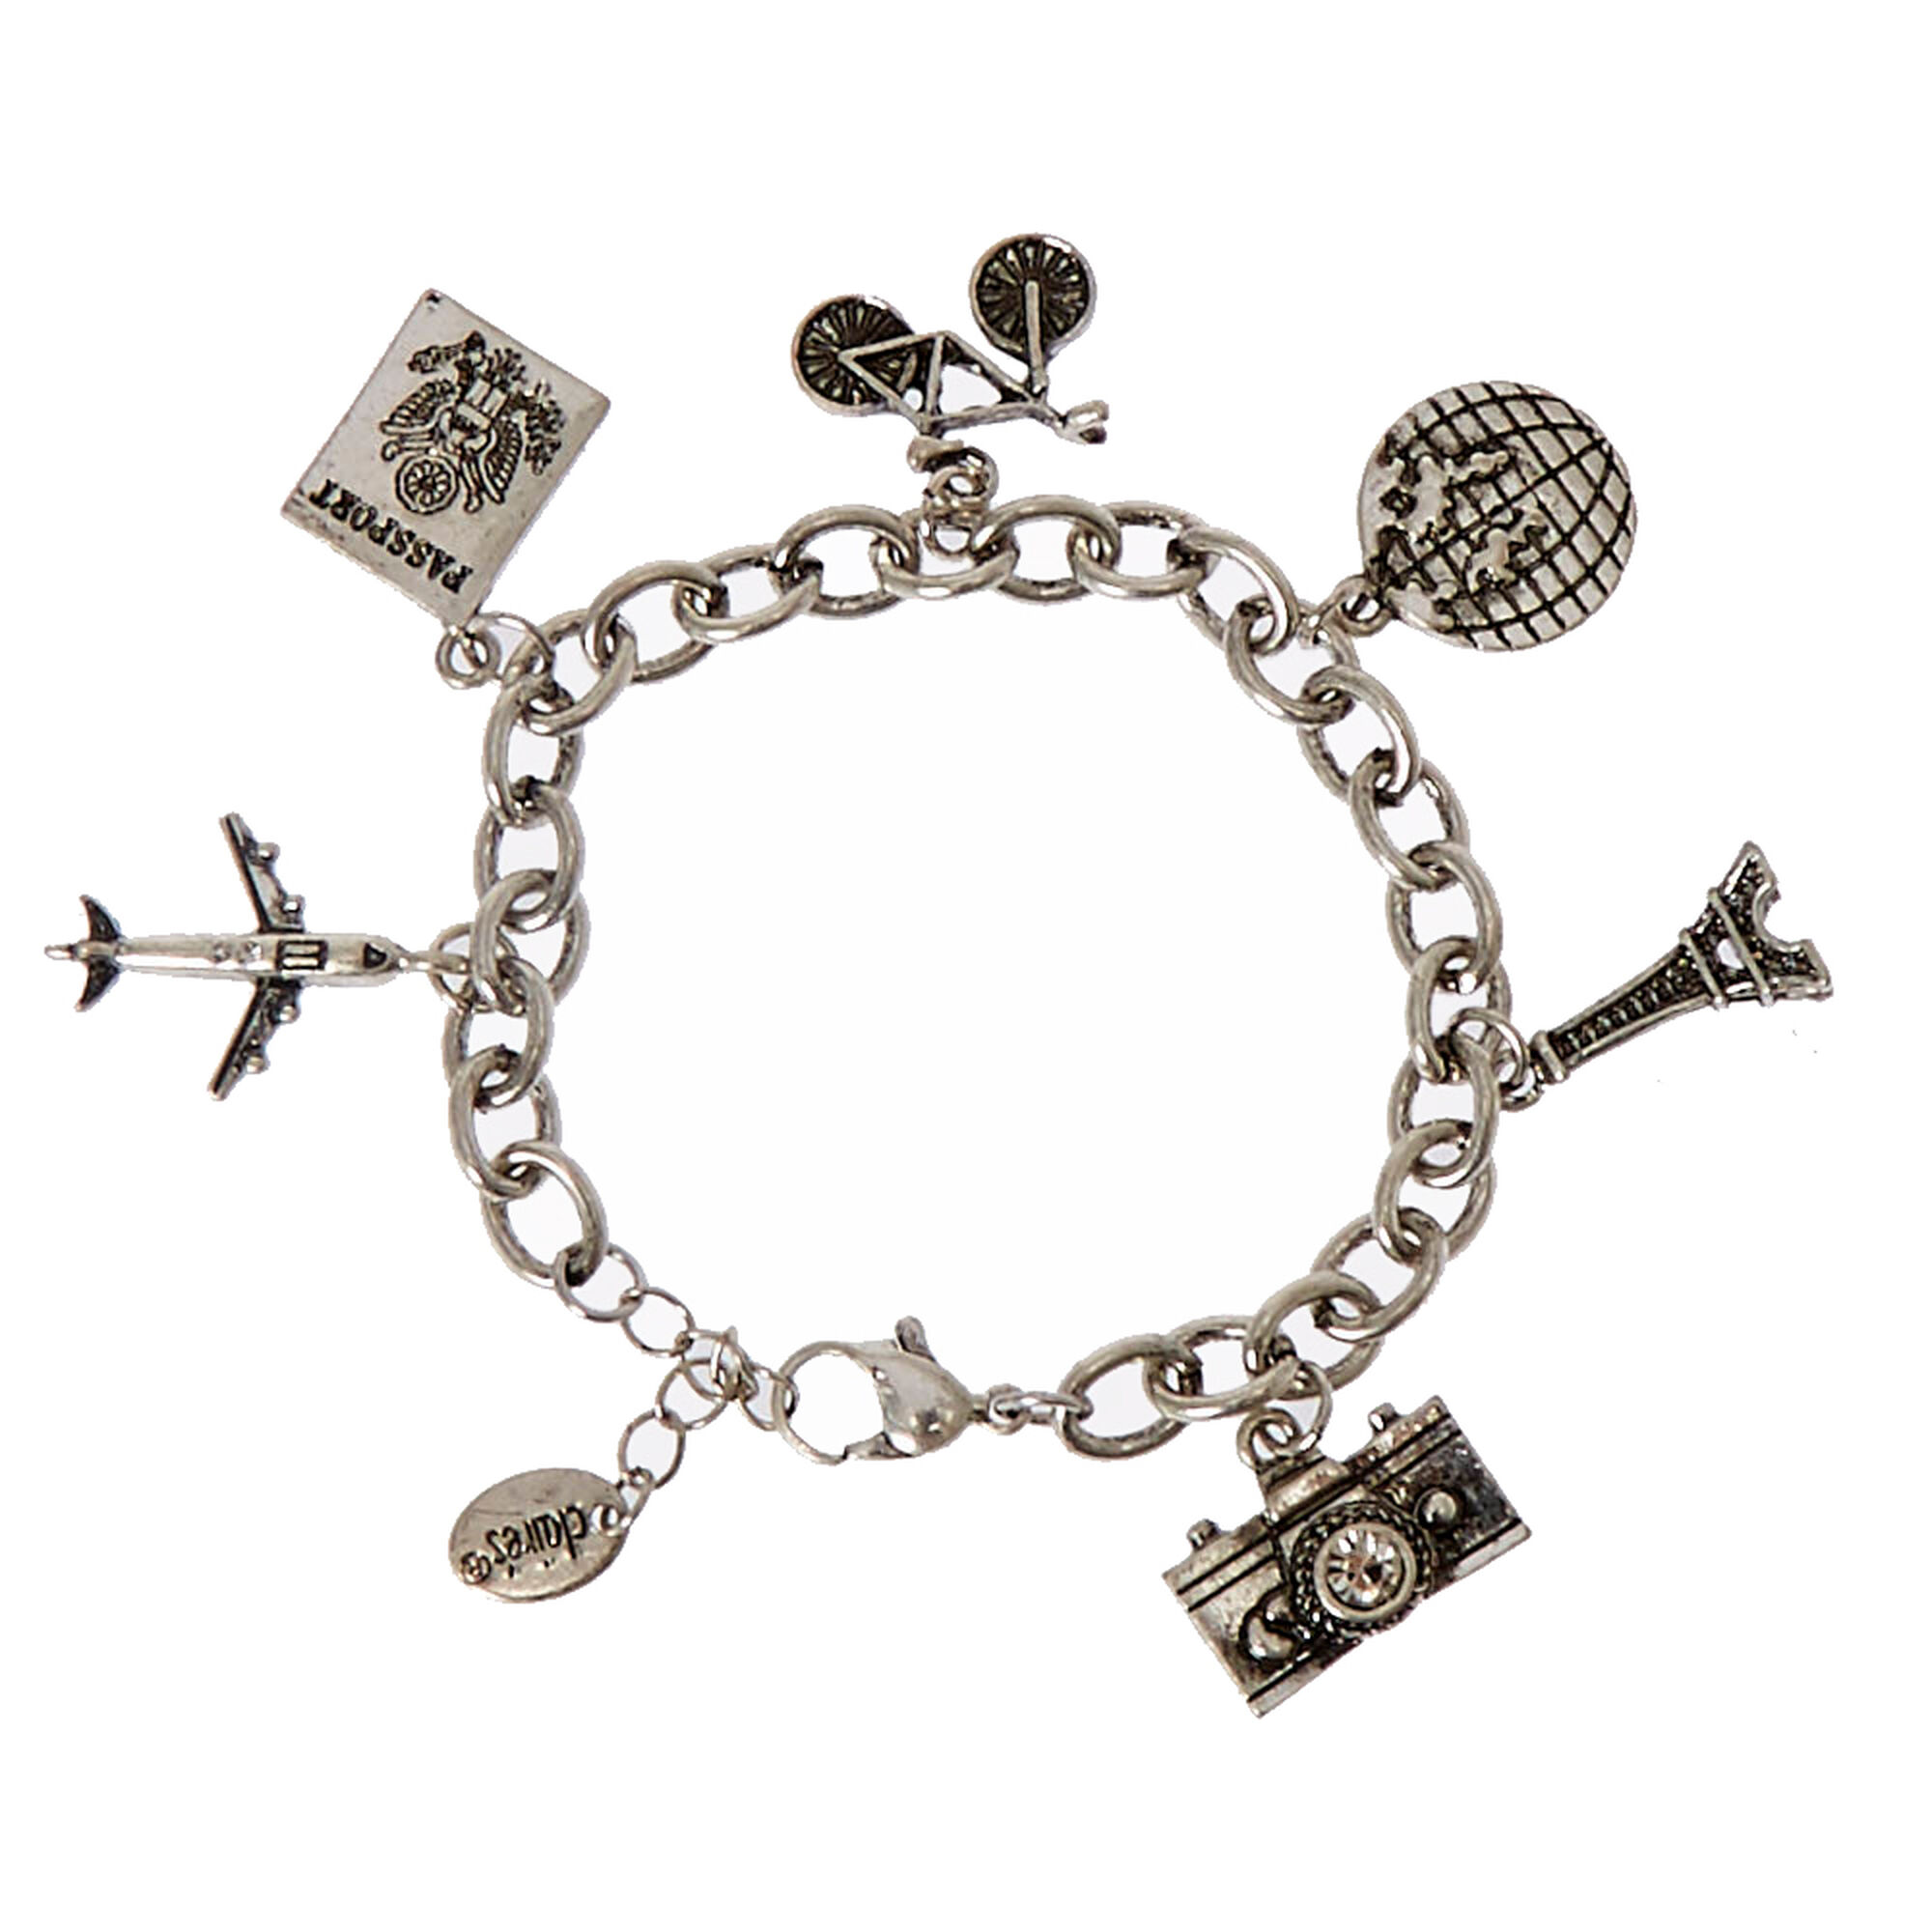 morgan heart bangles bracelets by browse range fingerprint charm french bead sweetie bracelet